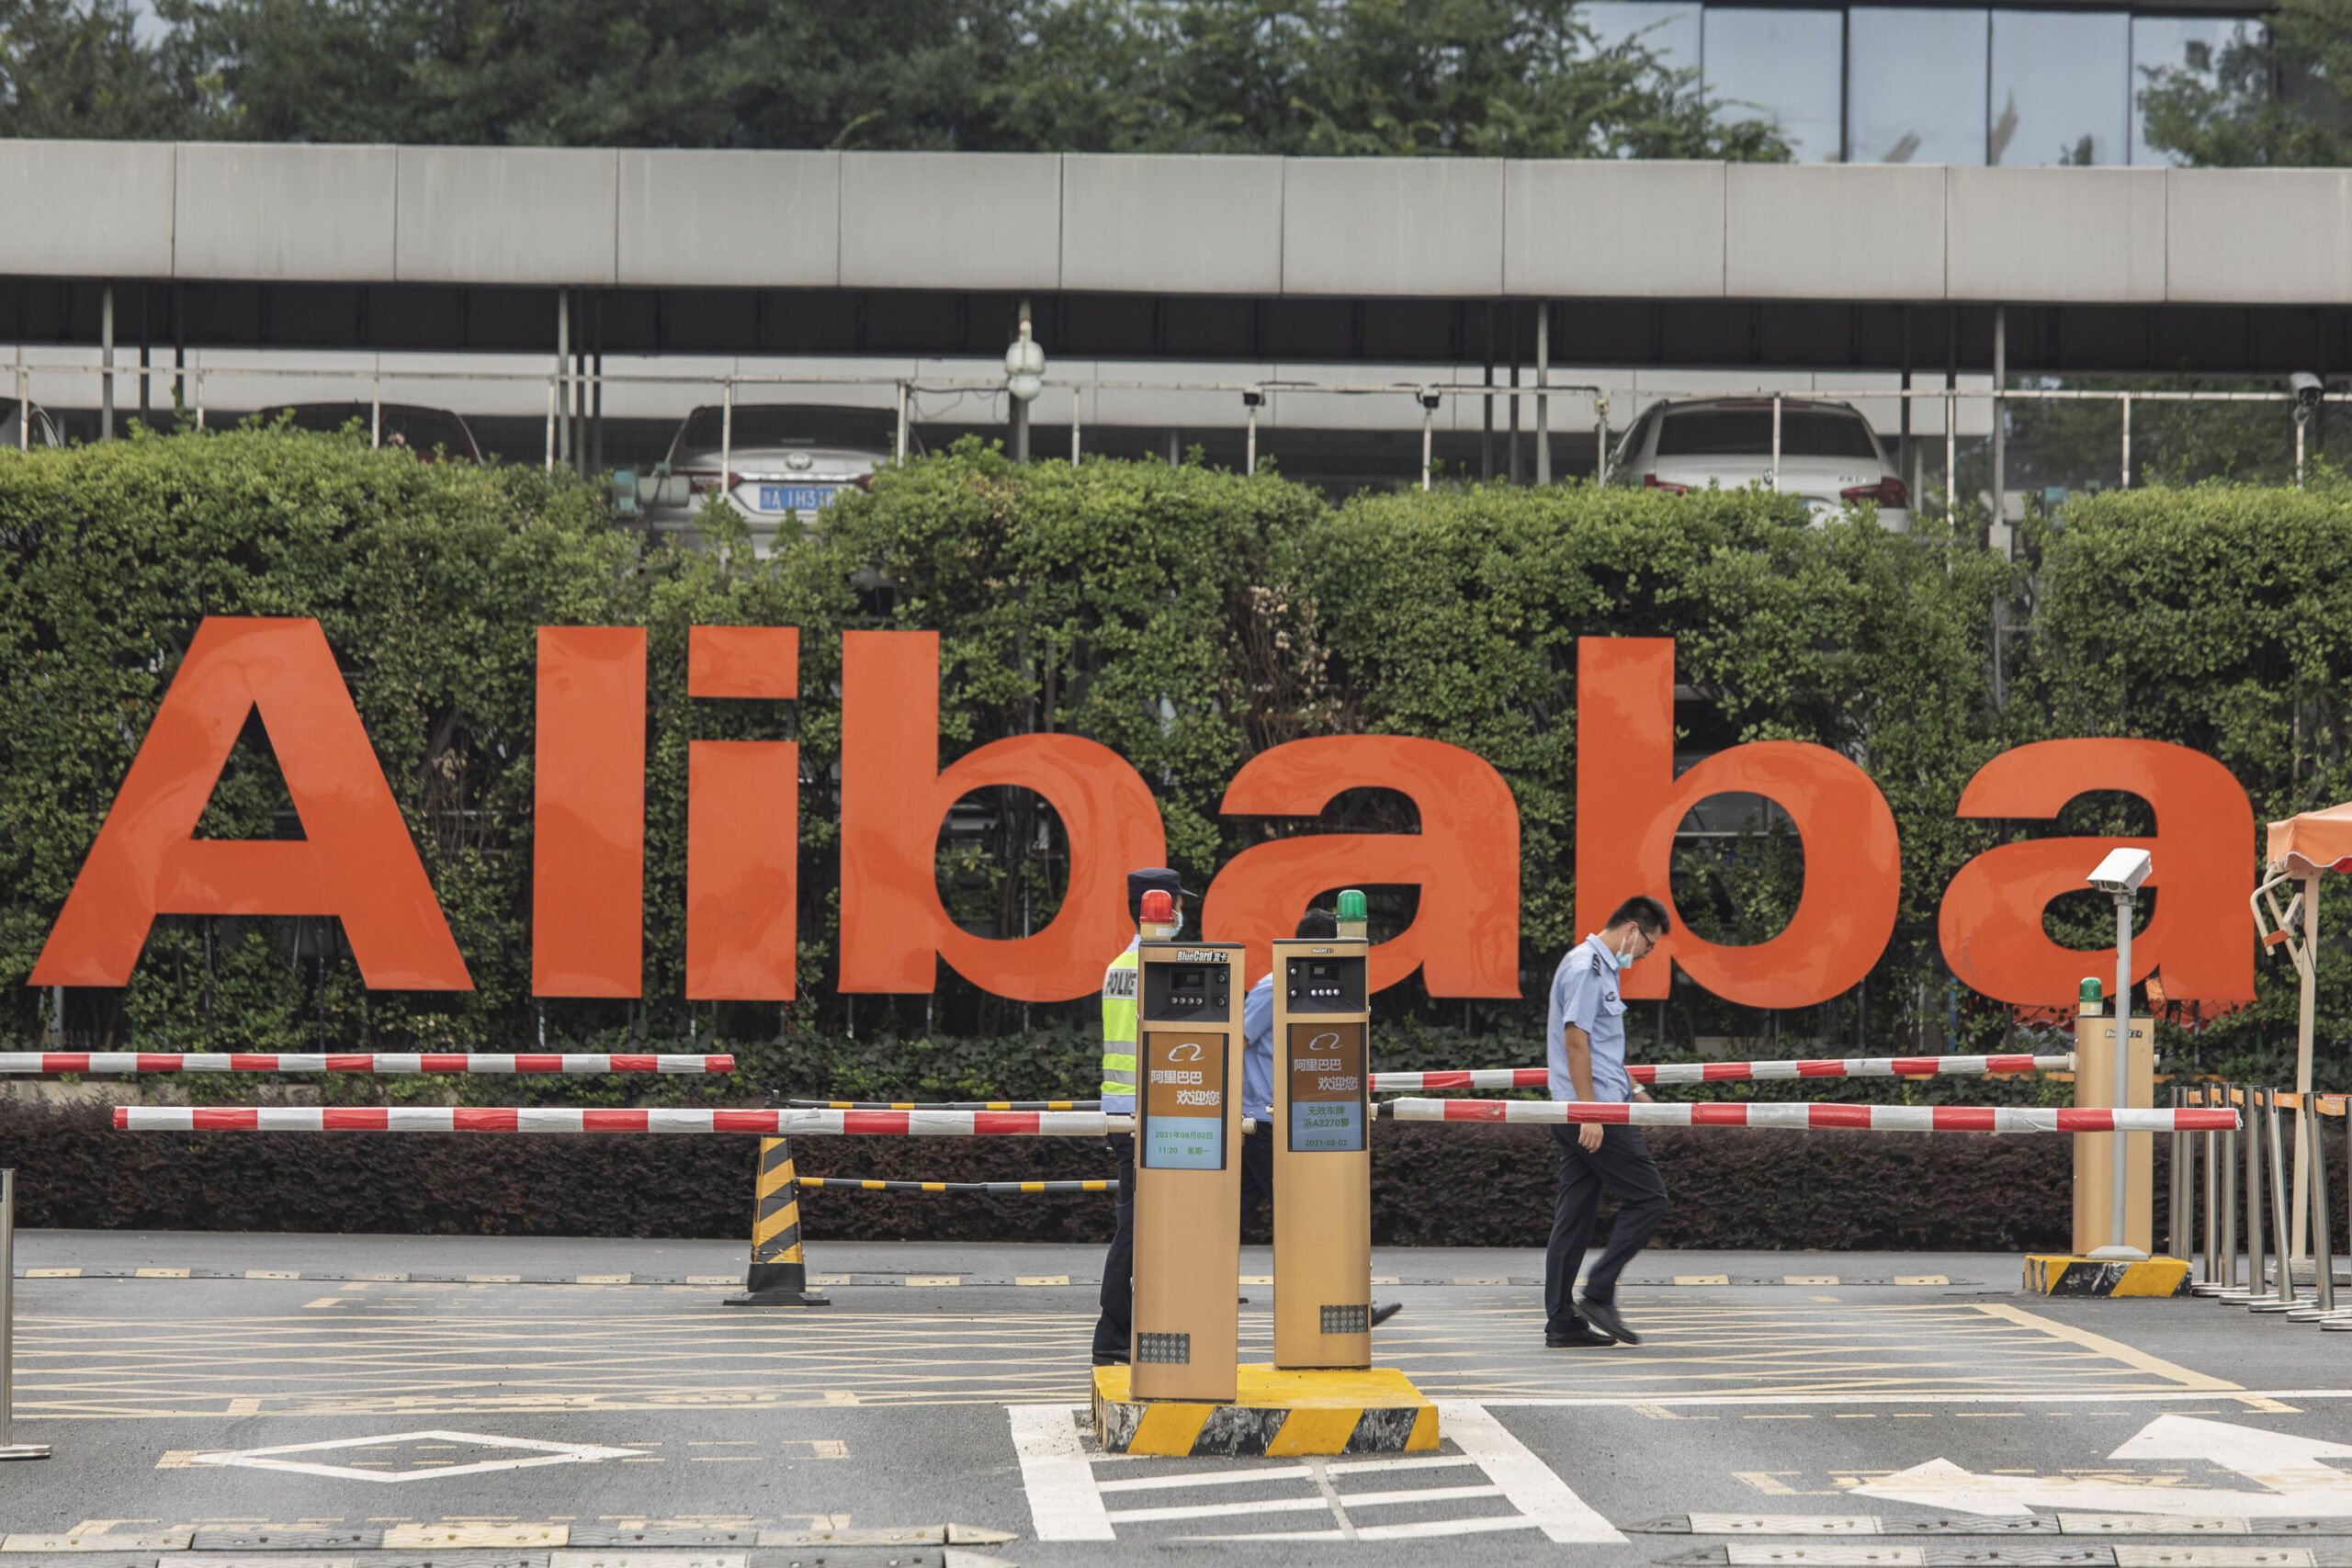 <i>Qilai Shen/Bloomberg/Getty Images</i><br/>Alibaba unveils a 50% increase in its share repurchase plans Tuesday. This image shows the Alibaba Group Holding Ltd. headquarters in Hangzhou